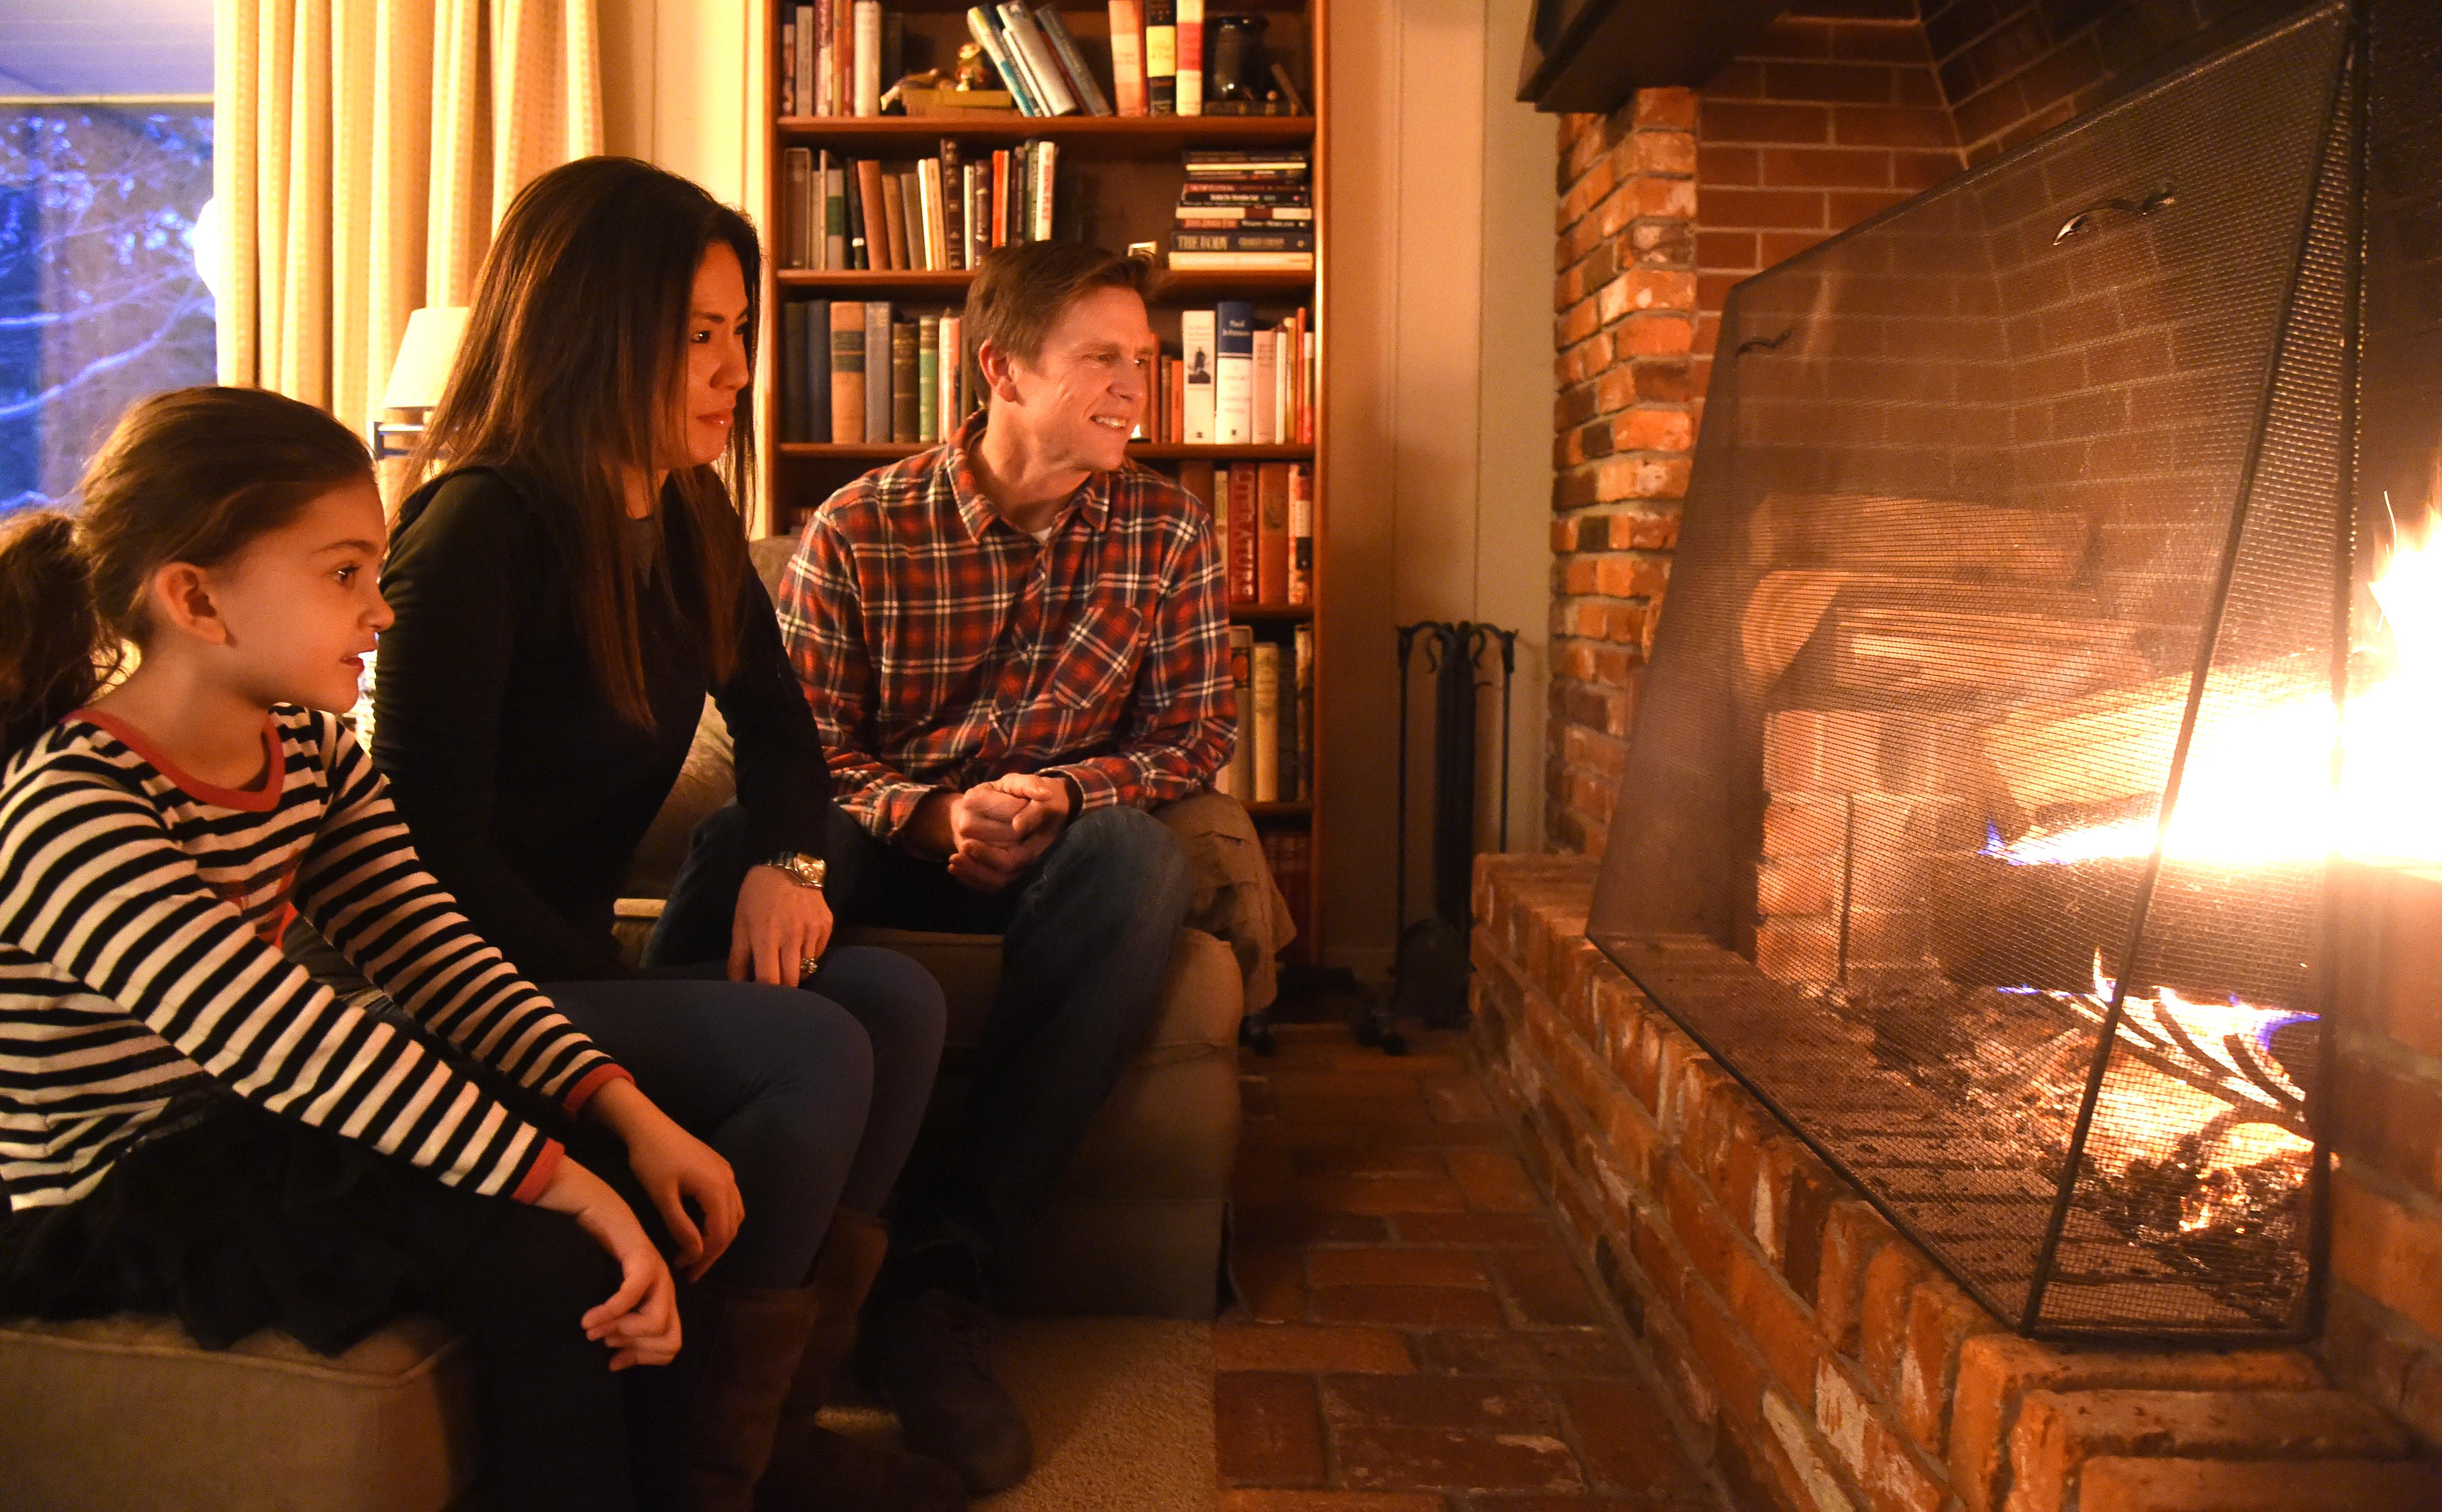 Patrick and Ting Vollmer with daughter Zoe, 6, sit in front of their fire place Friday, Nov. 27, 2015, after being one of the last customers to get power restored by the utility company. They stayed with family, eventually found a generator and survived the last few days. JESSE TINSLEY jesset@spokesman.com